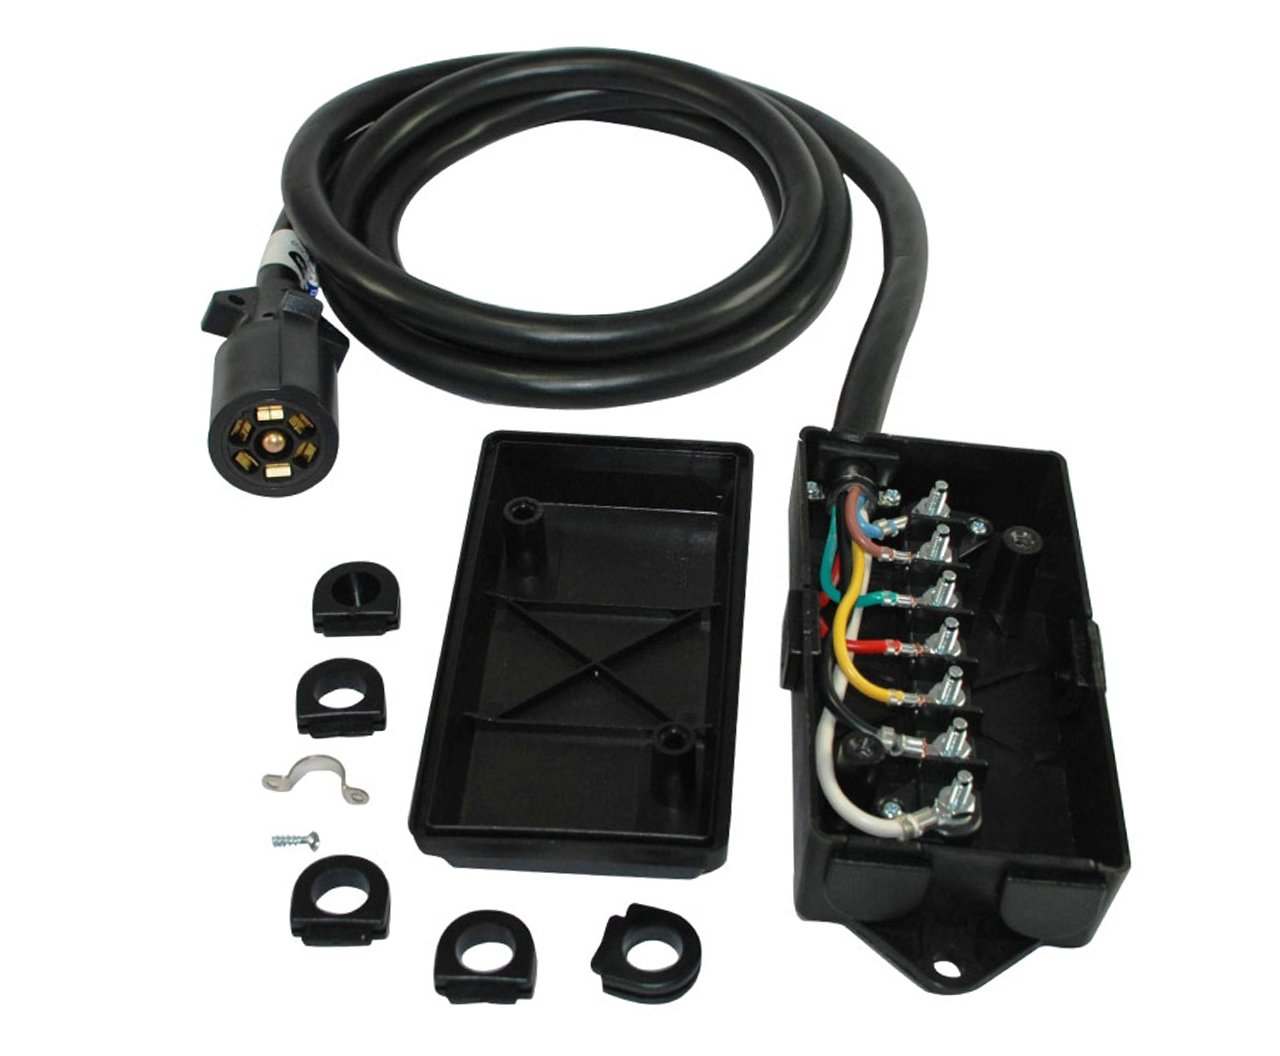 Amazon.com : Conntek 7-Way Trailer Cord and Junction Box : Sports ...